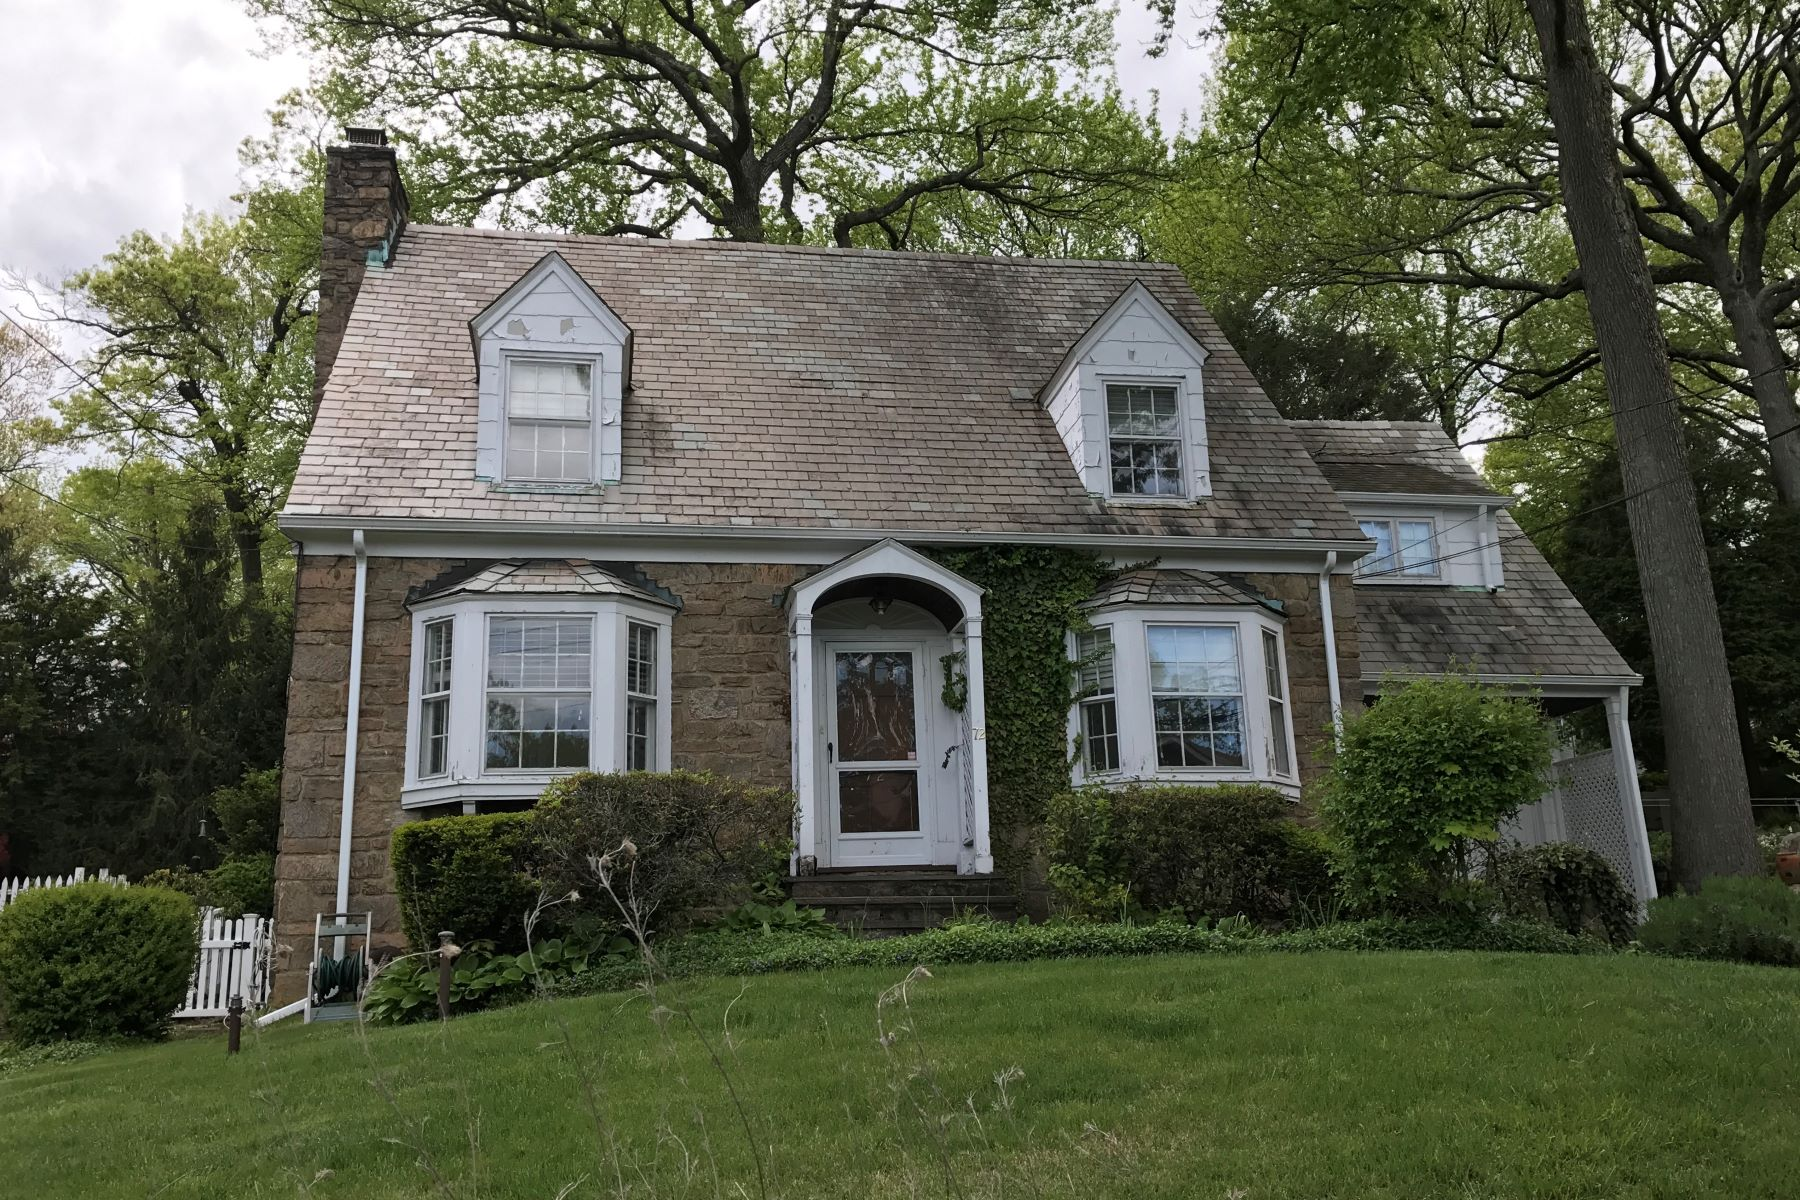 Single Family Home for Rent at Inviting Colonial Rental in Yonkers 72 Wildway Yonkers, New York 10708 United States